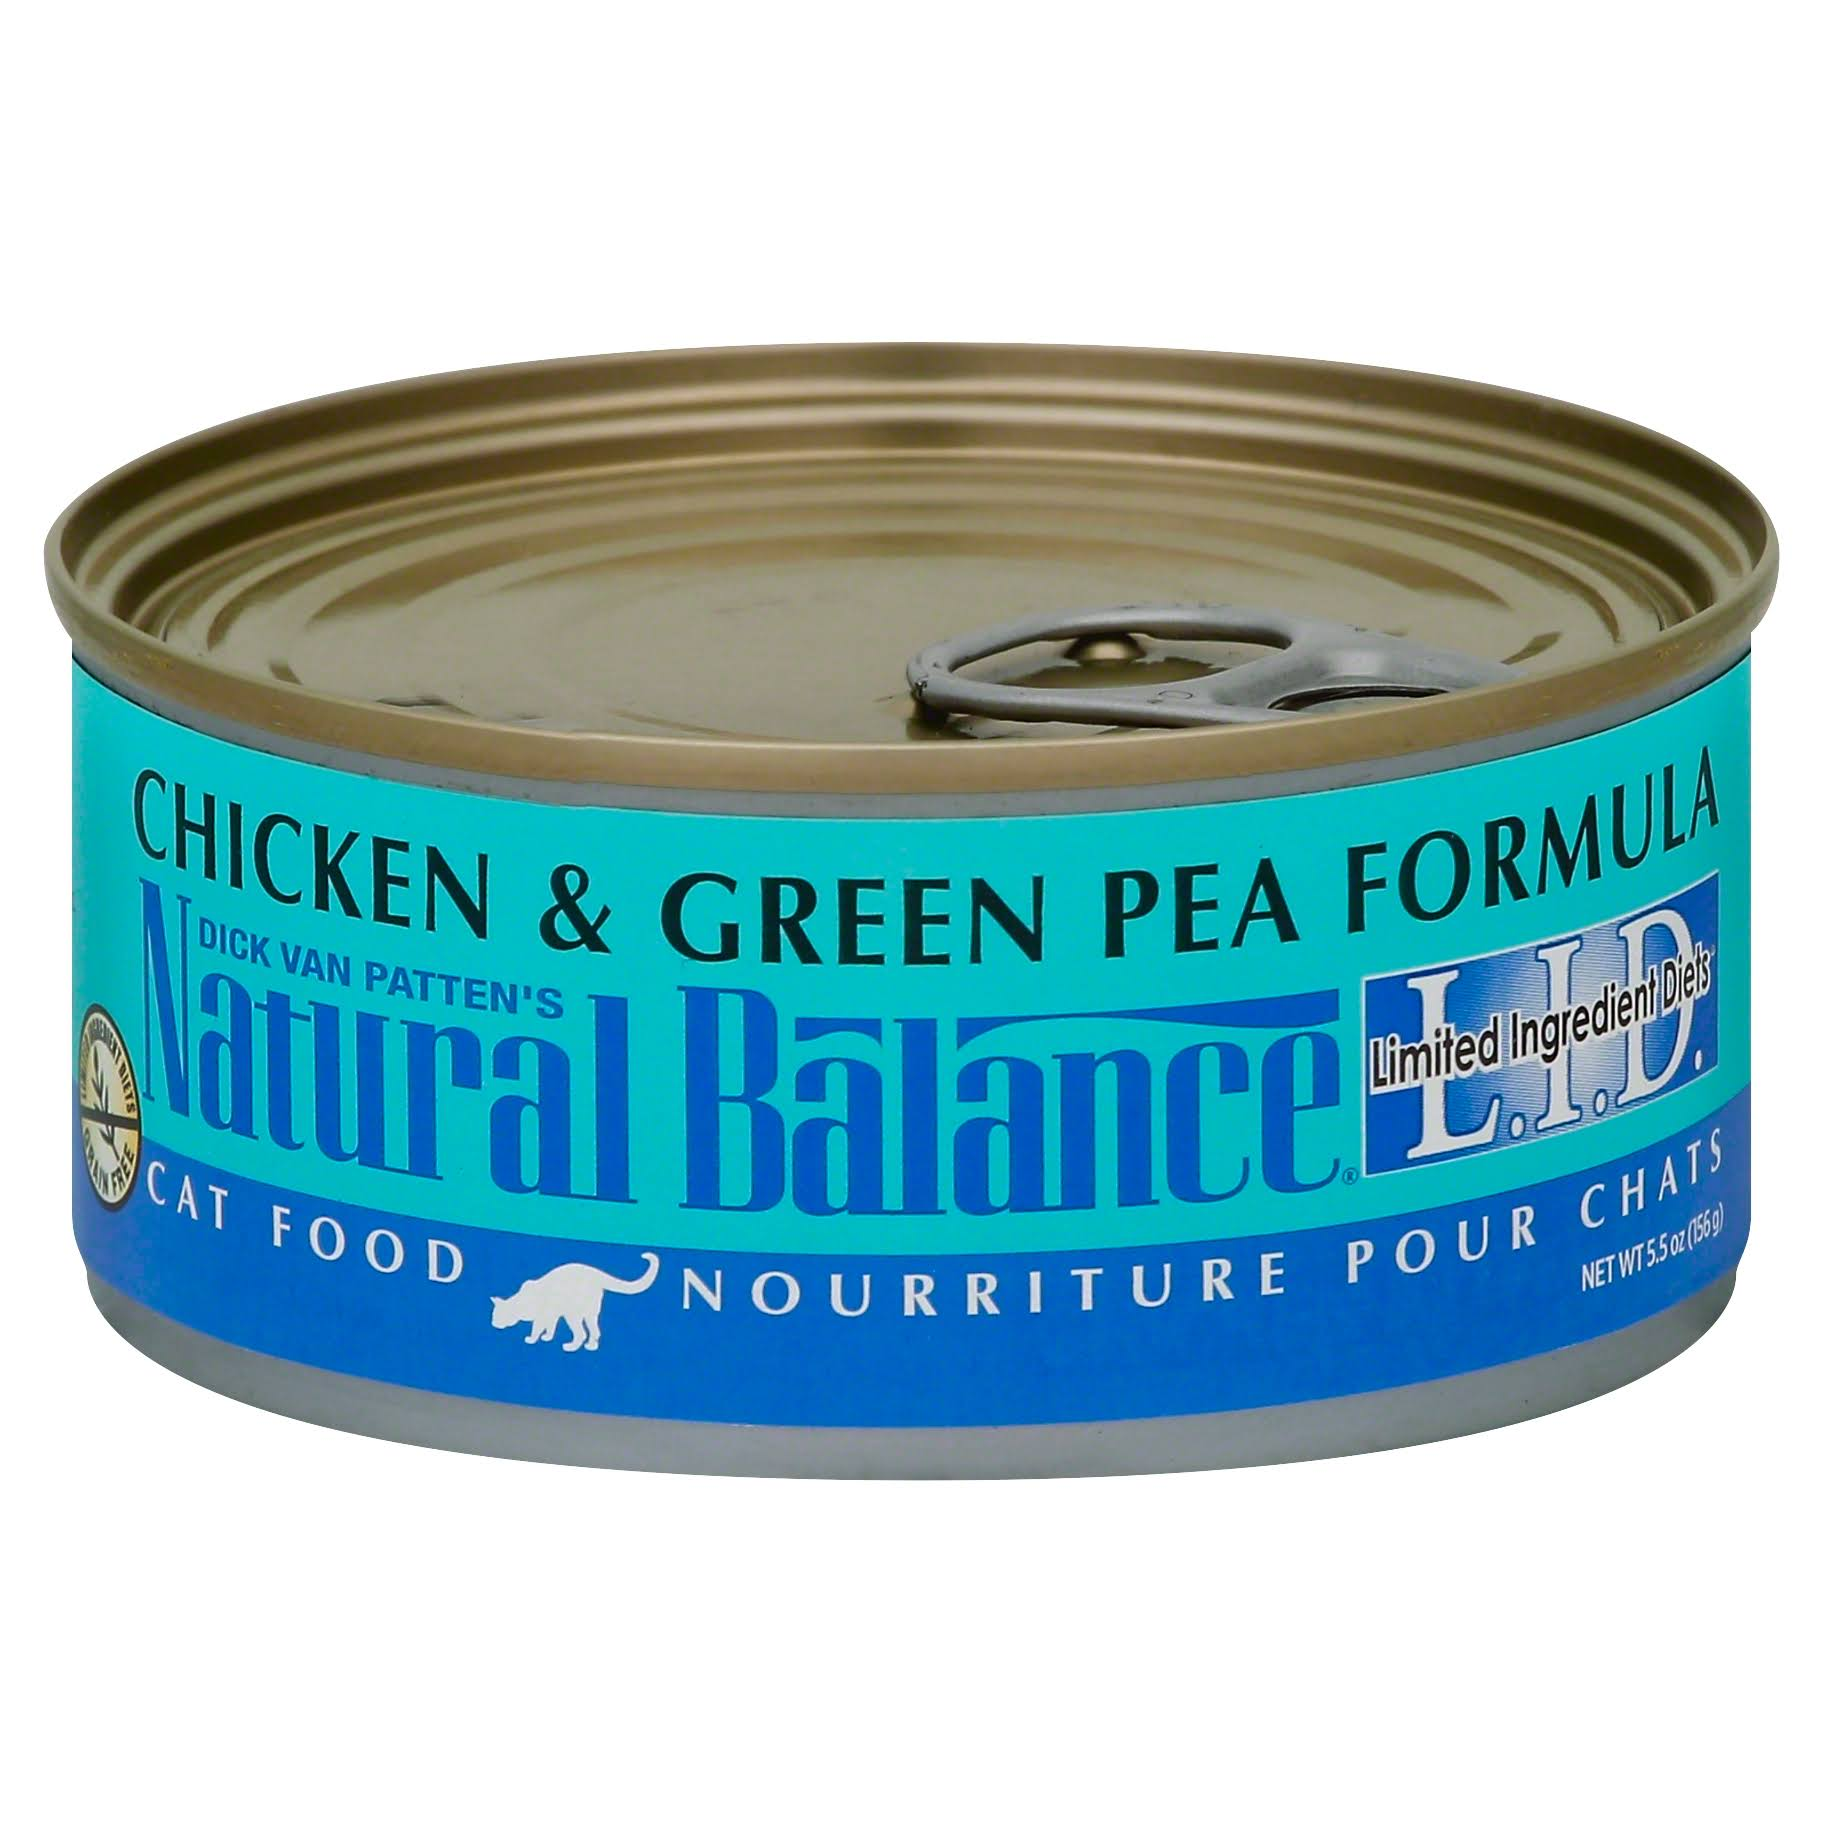 Natural Balance Lid Adult Cat Wet Food - Chicken & Green Pea, 5.5oz